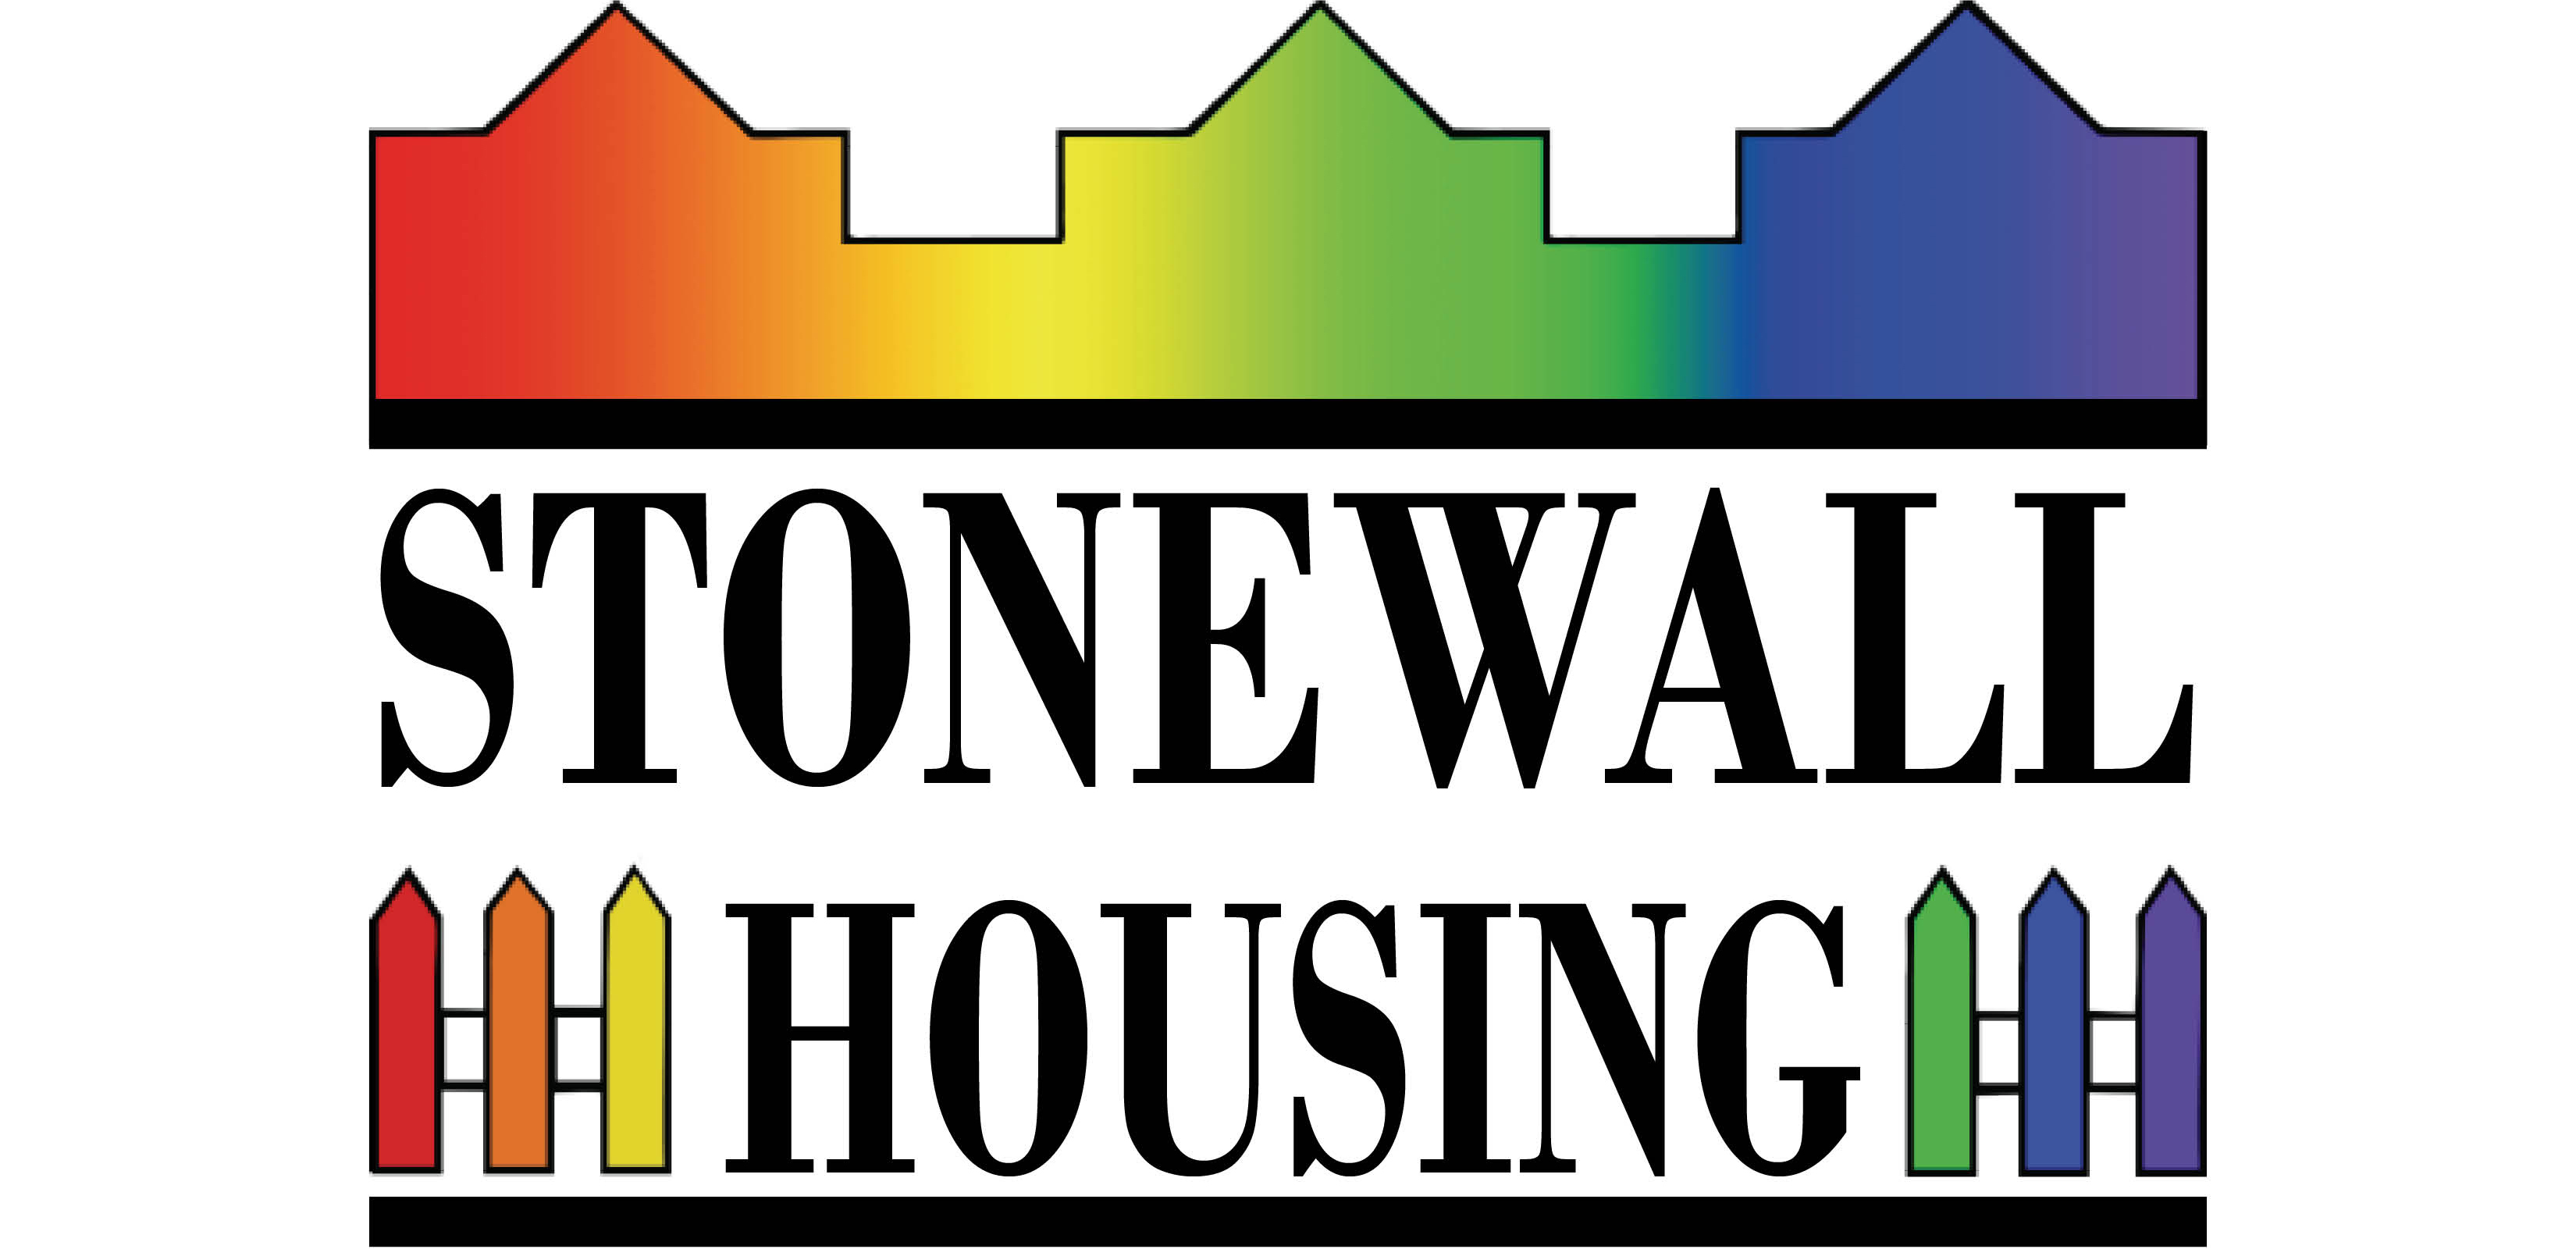 Stonewall Graphic